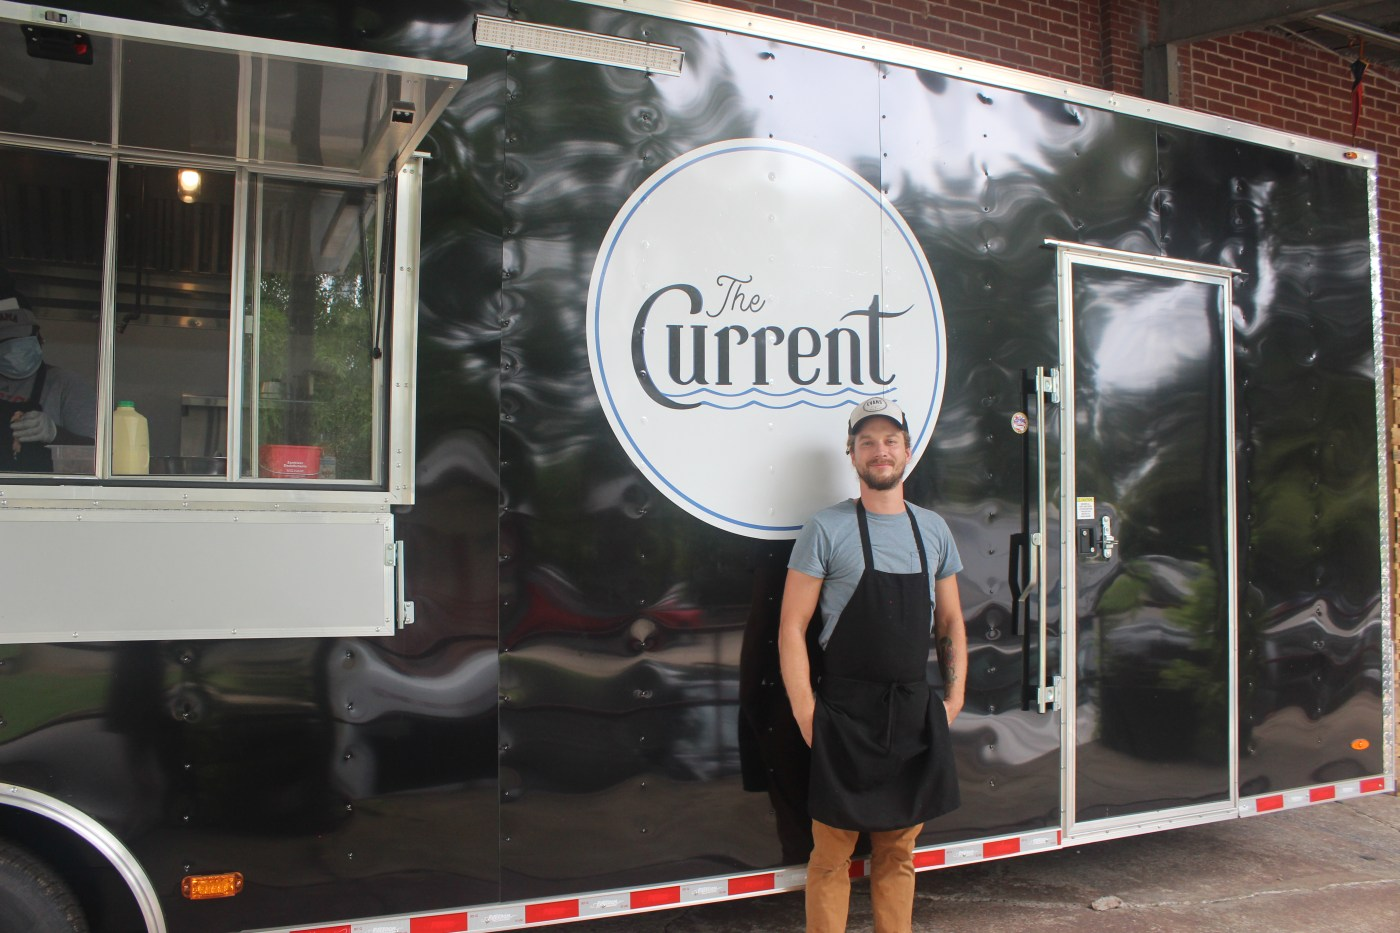 The Current food truck